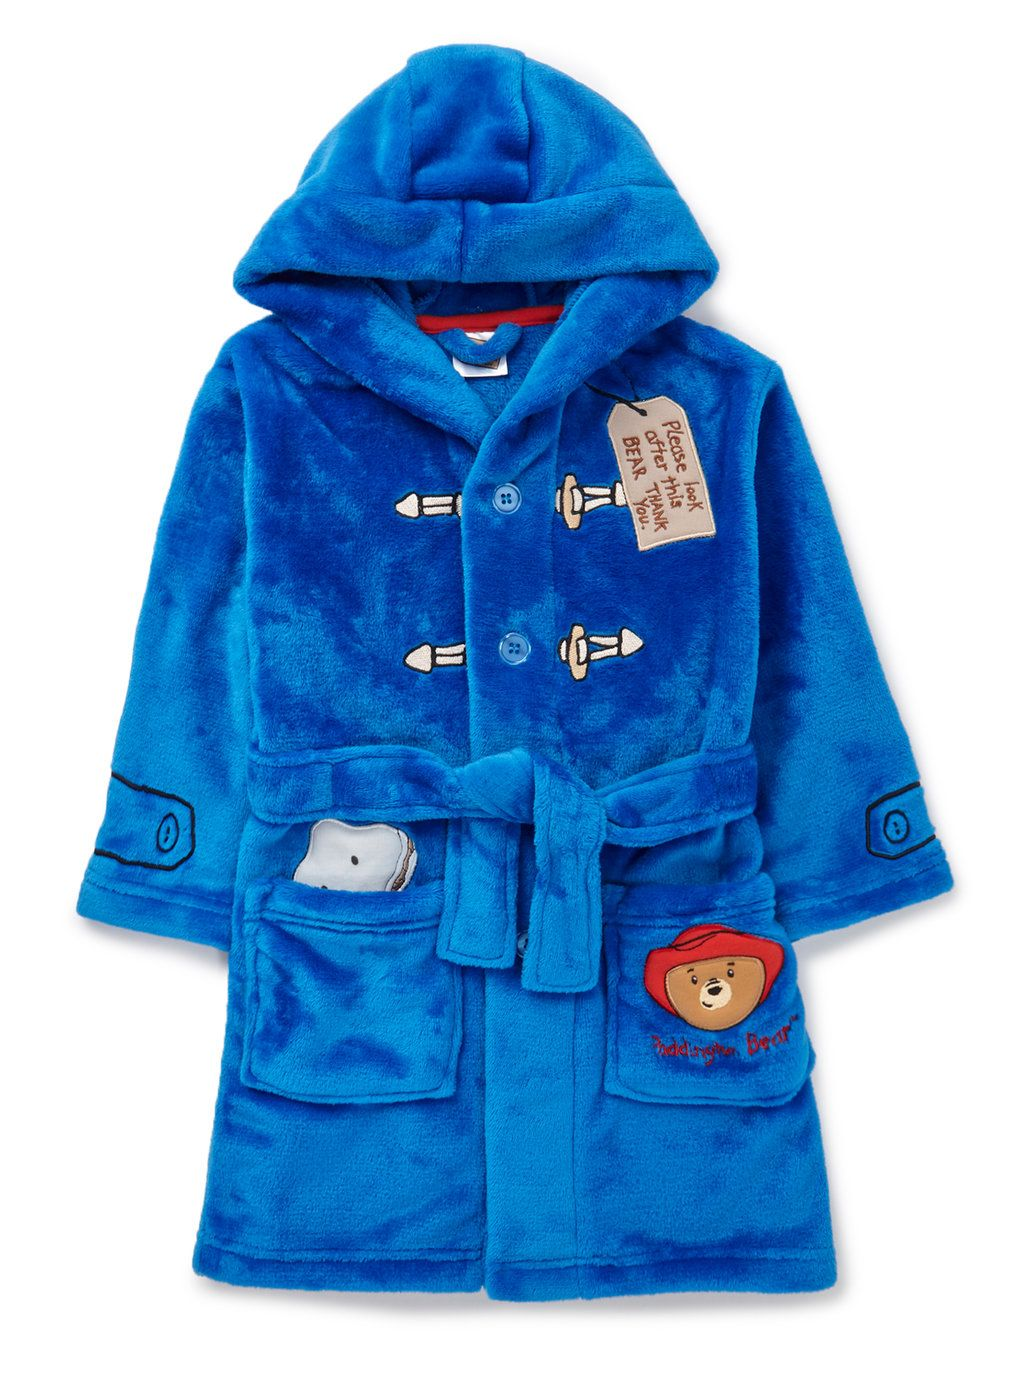 Paddington Bear® Dressing Gown - BHS | Baby stuff | Pinterest ...